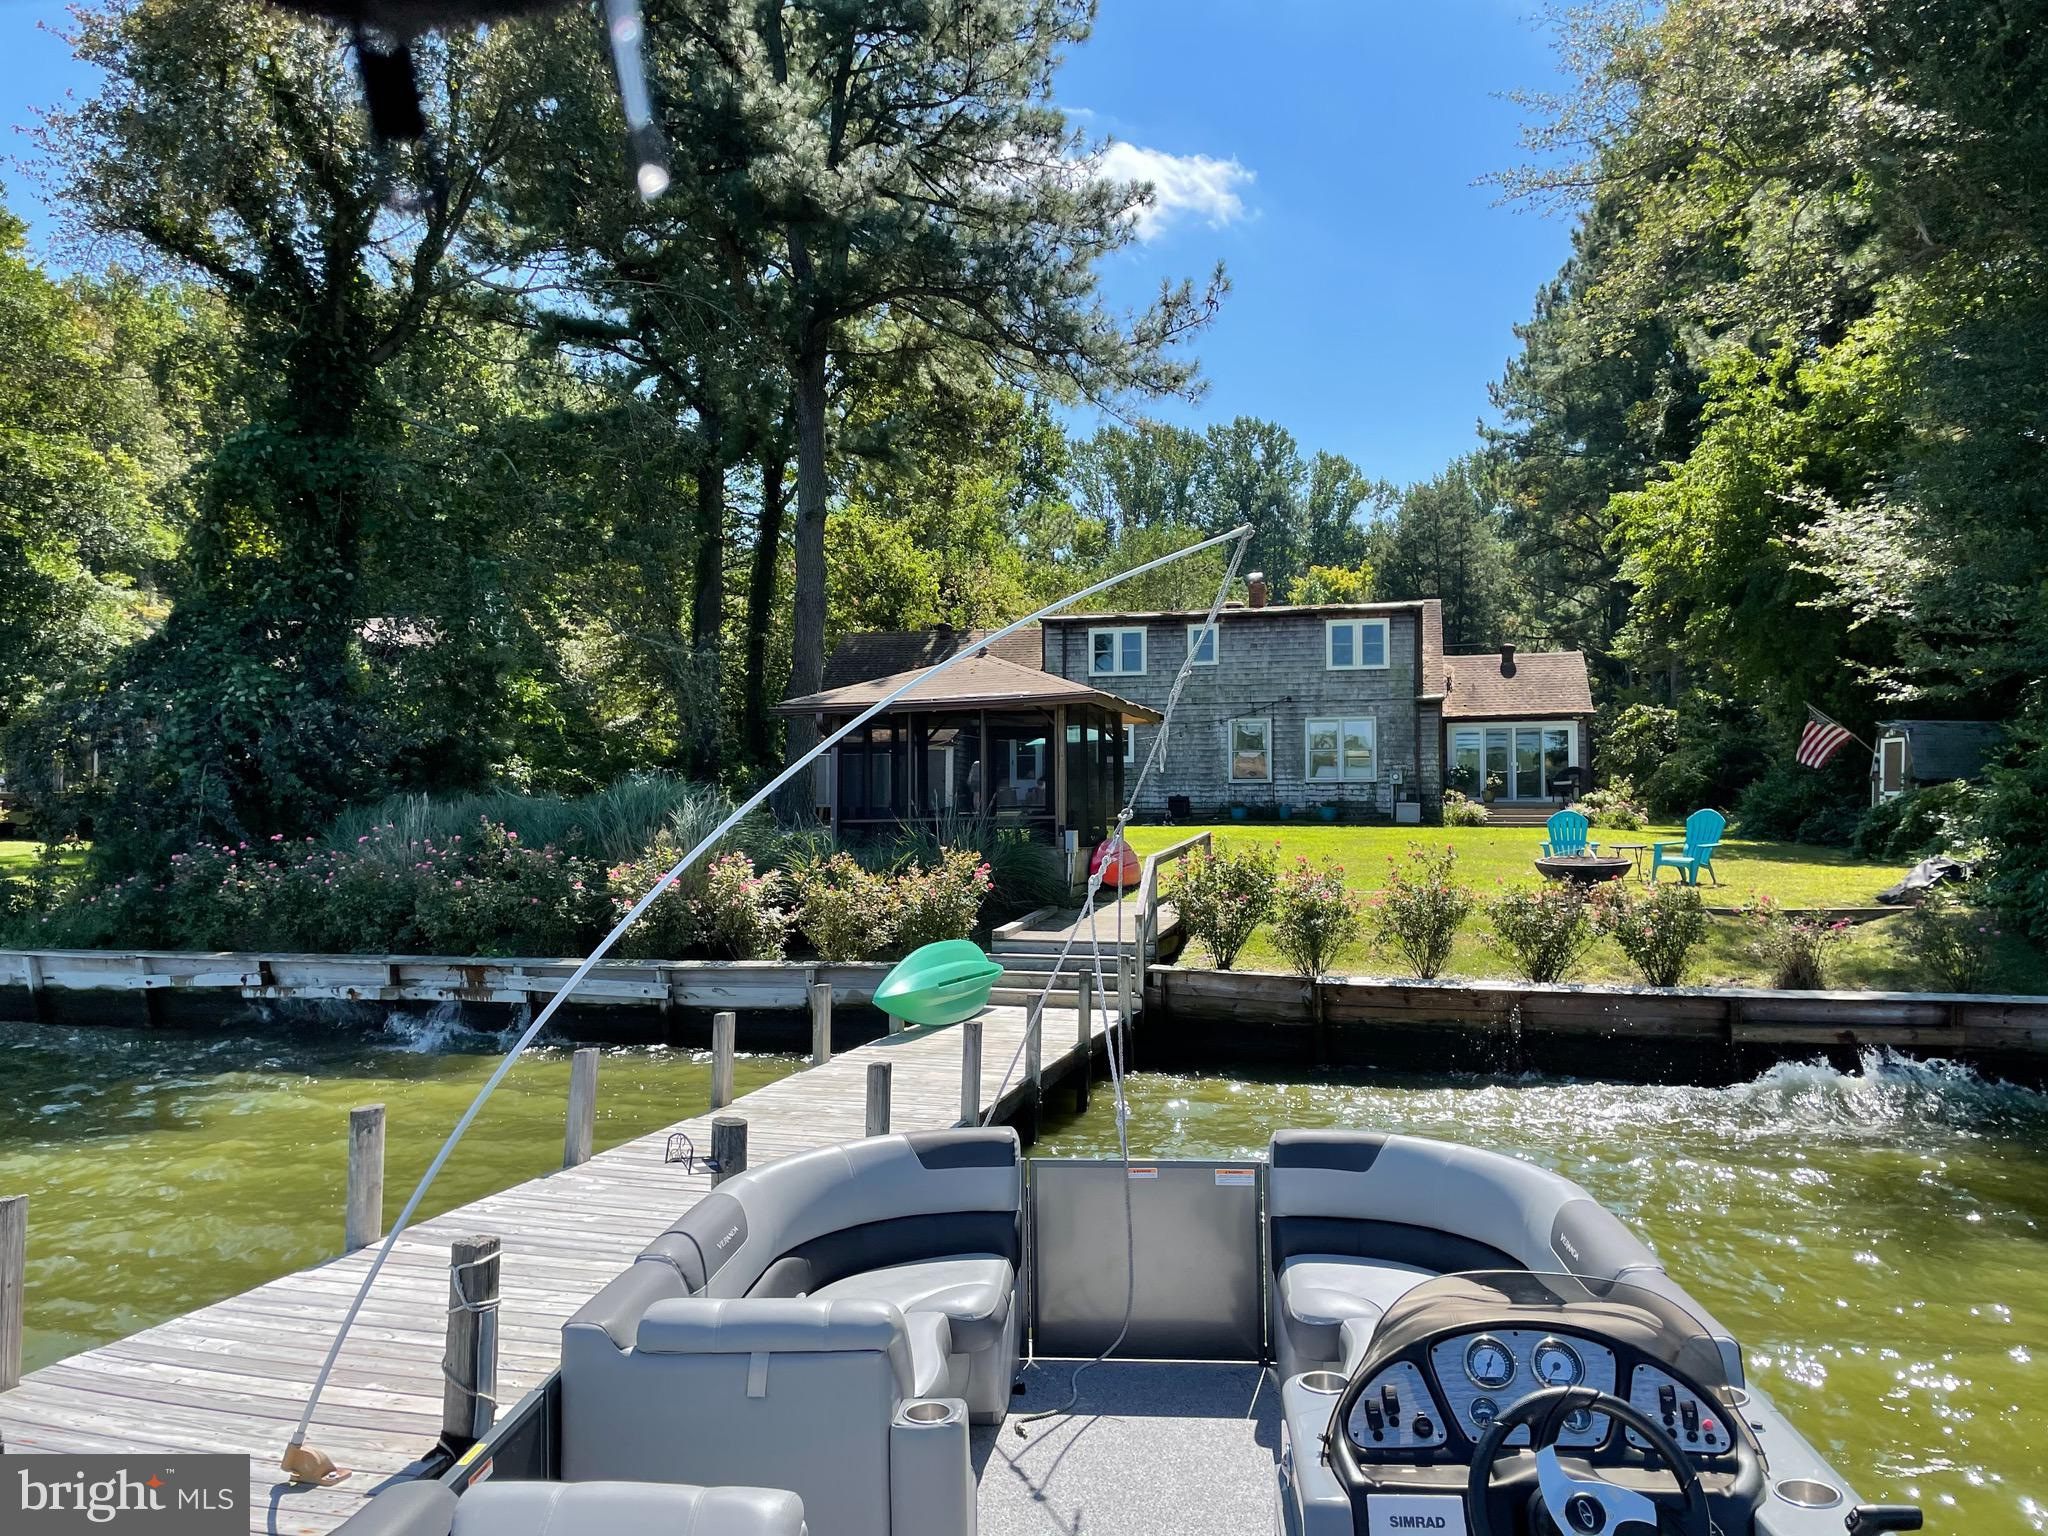 """PRICED TO SELL.  3BR, 2BA Waterfront Paradise.  Cardinals welcome you home to this Artist Cottage on 1 acre w deep water dock.  """"Cardinals Cove"""" has a high vantage point overlooking Herring Creek, migrating birds, kayakers & sailors.  Each day brings new beginnings, morning coffee, sunrises & checking your crab pots.  Friends & family will enjoy this cozy cottage.  Warm yourself on cooler evenings w your pellet stove.  Serenity & peace abound.  Be inspired to paint, journal, relax or venture on Herring Creek which offers access to Inland Bays to Lewes, Rehoboth, Dewey & Ocean via Indian River Inlet.  Bring your kayak, sailboat or pontoon.  NO HOA,  NO Restrictions & NOT in a flood zone. Full dry basement."""